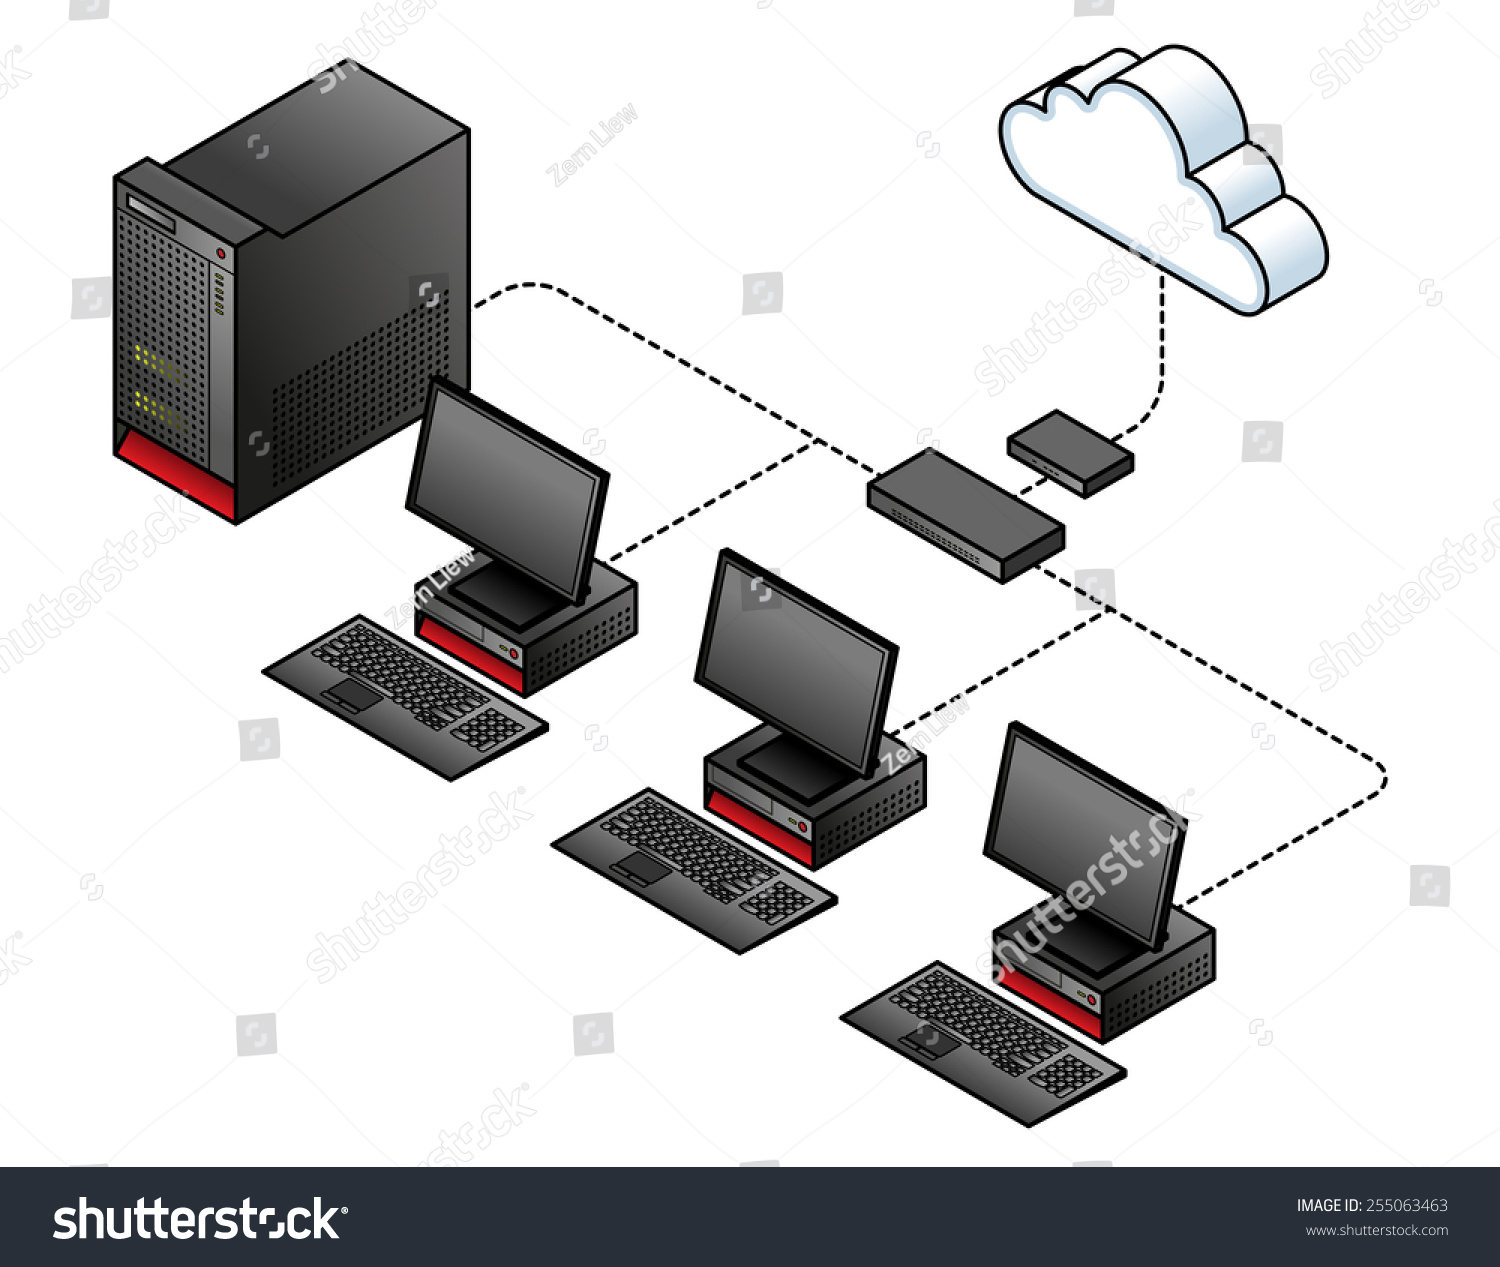 diagram simple wired network broadband modem stock vector diagram of a simple wired network a broadband modem gateway a network switch